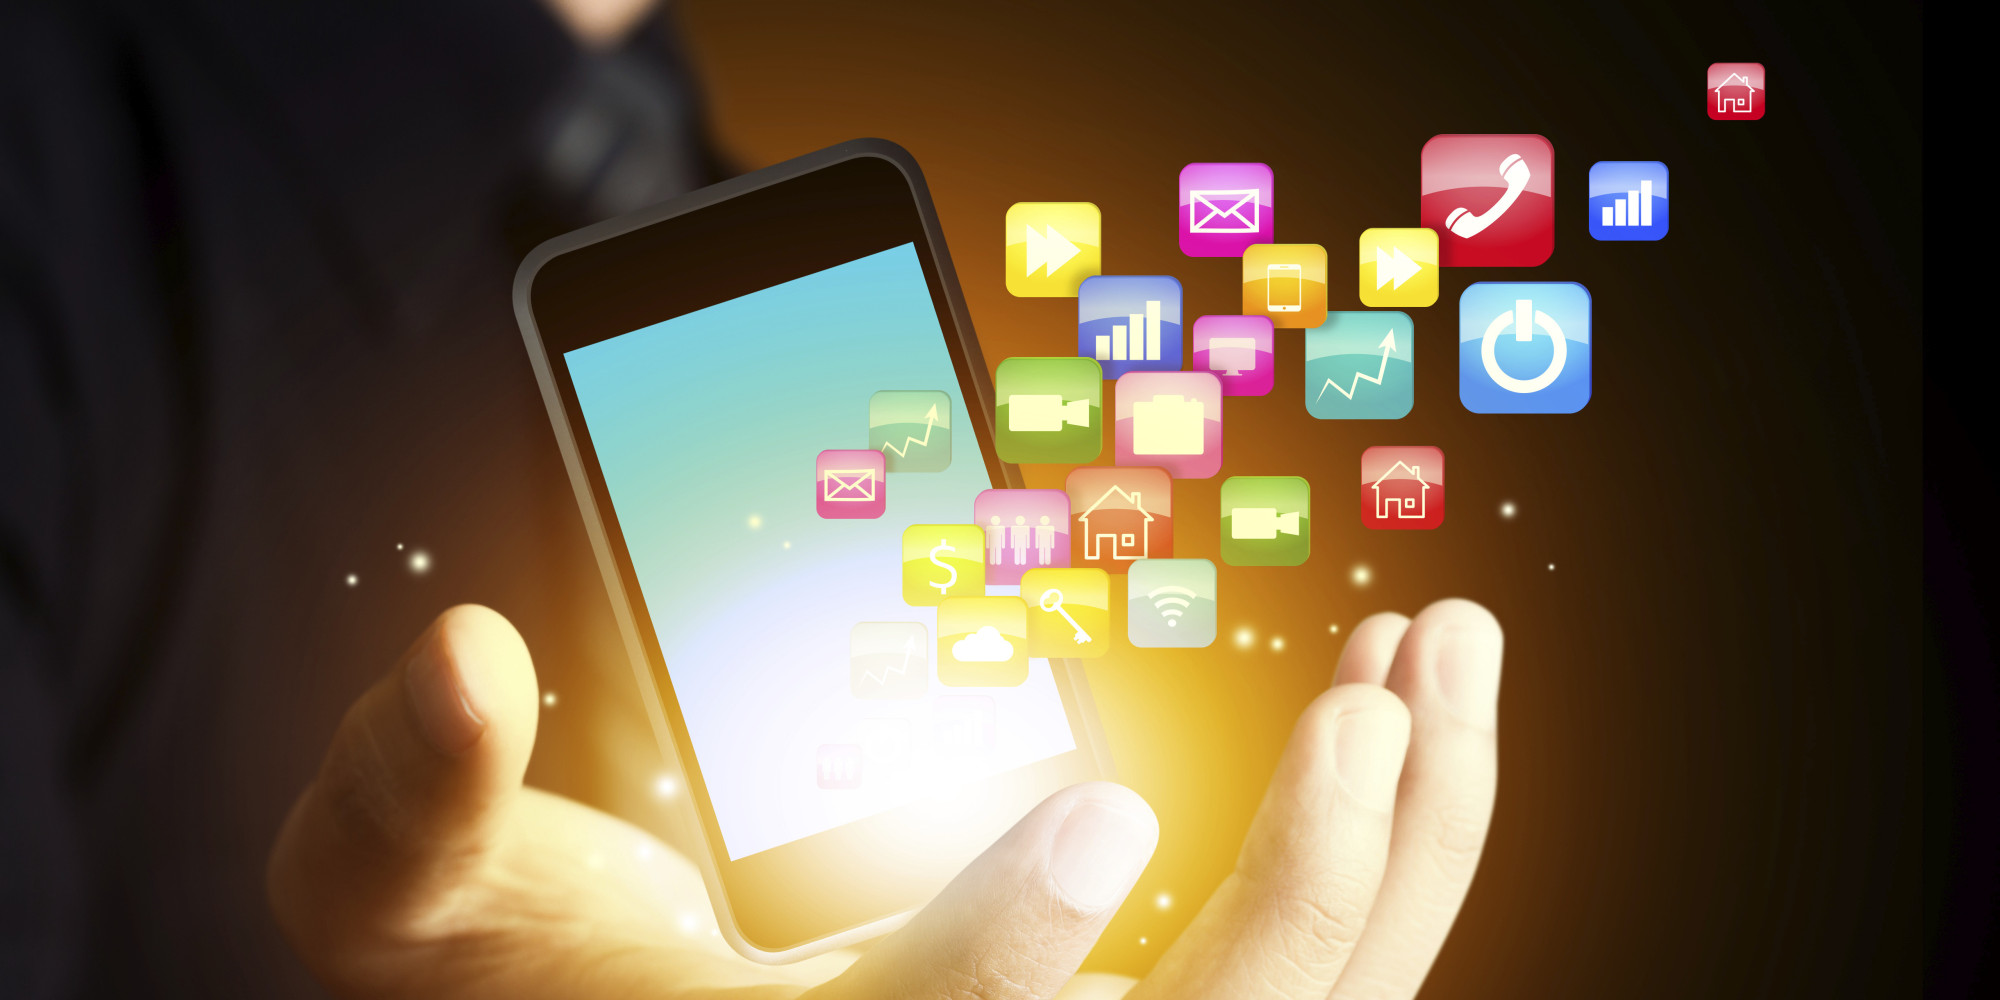 http://www.huffingtonpost.com/dorit-sasson/do-ecommerce-apps-really-_b_8416810.html